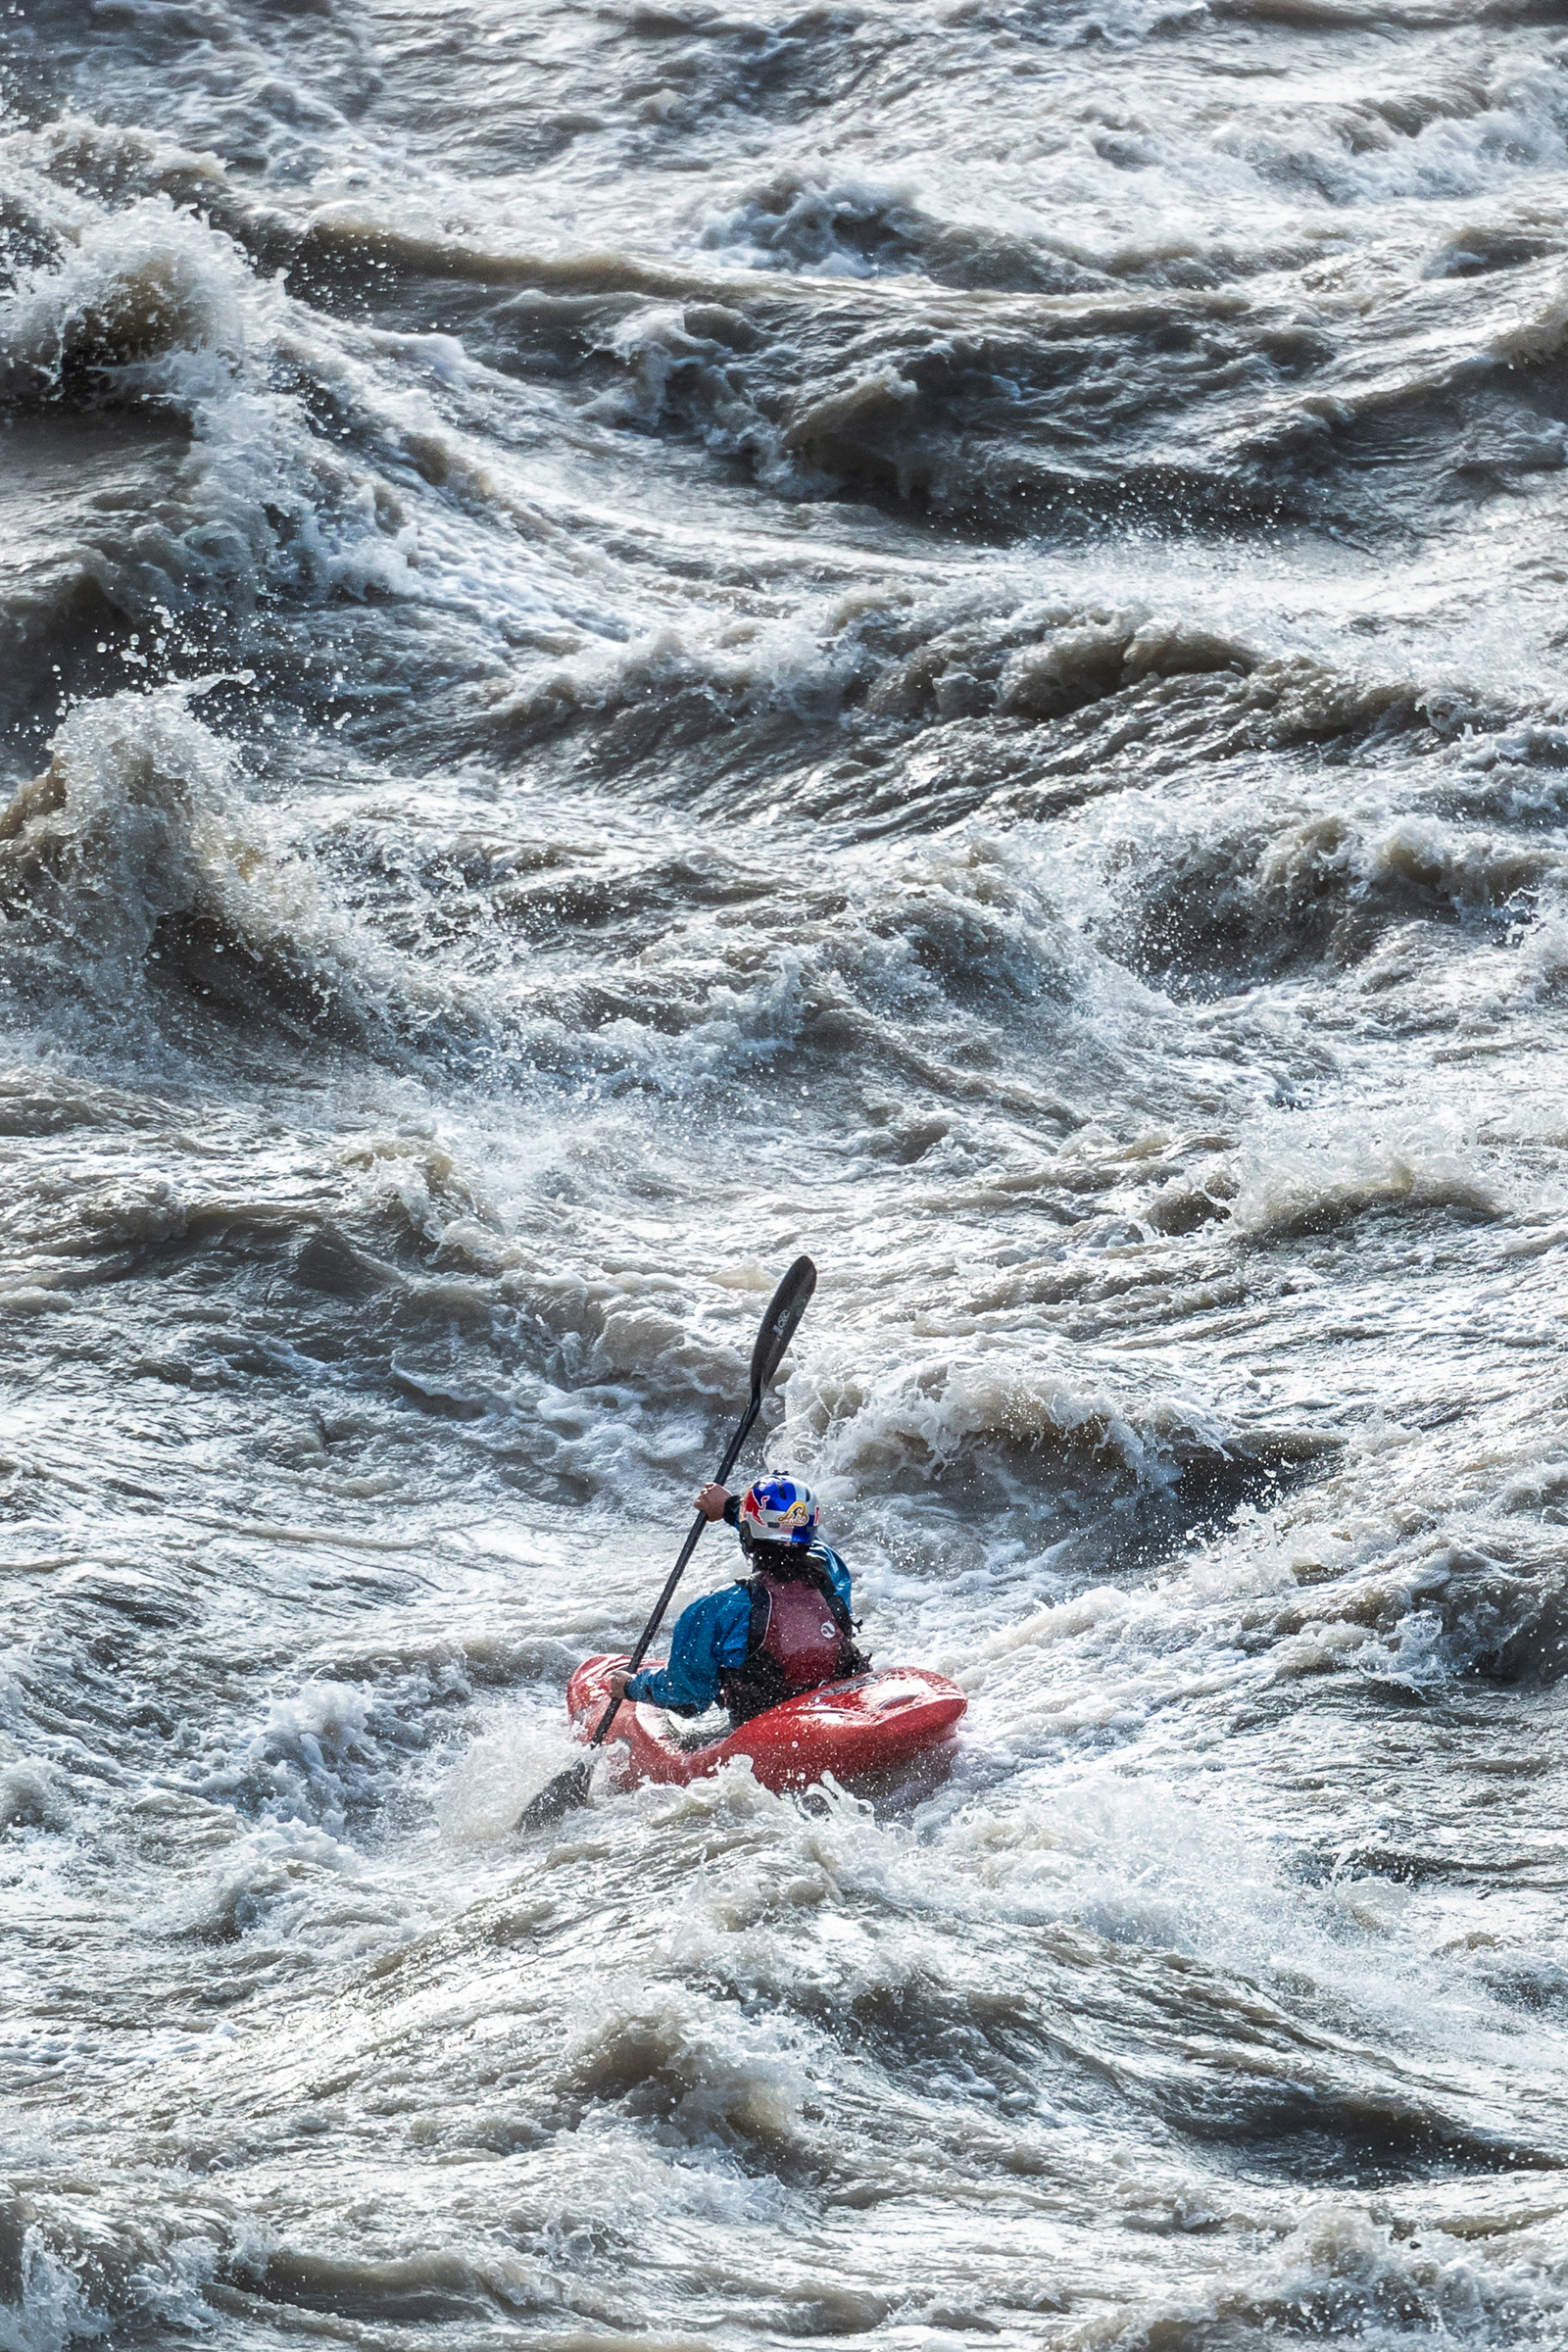 This is the story of Nouria Newman's solo adventure in India. RedBull. Ladakh. Indus River. Kayaking. Kayaks.